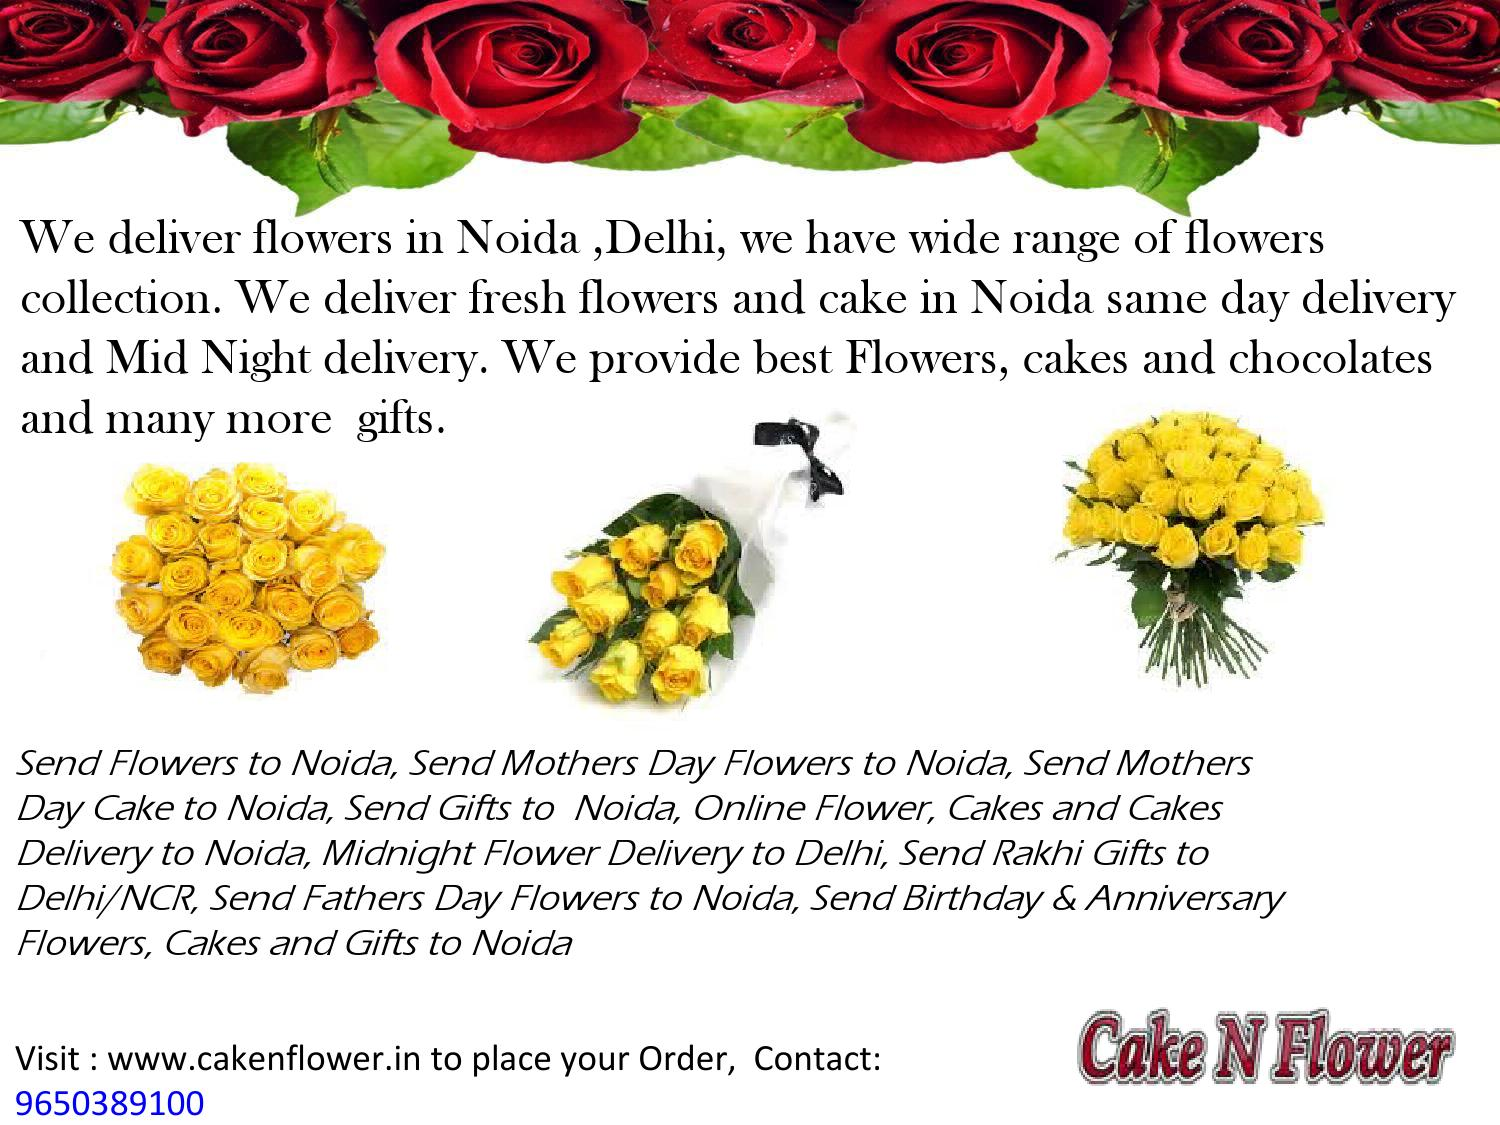 Show Your Feeling By Sending Their Favorite Cakes Cake N Flower